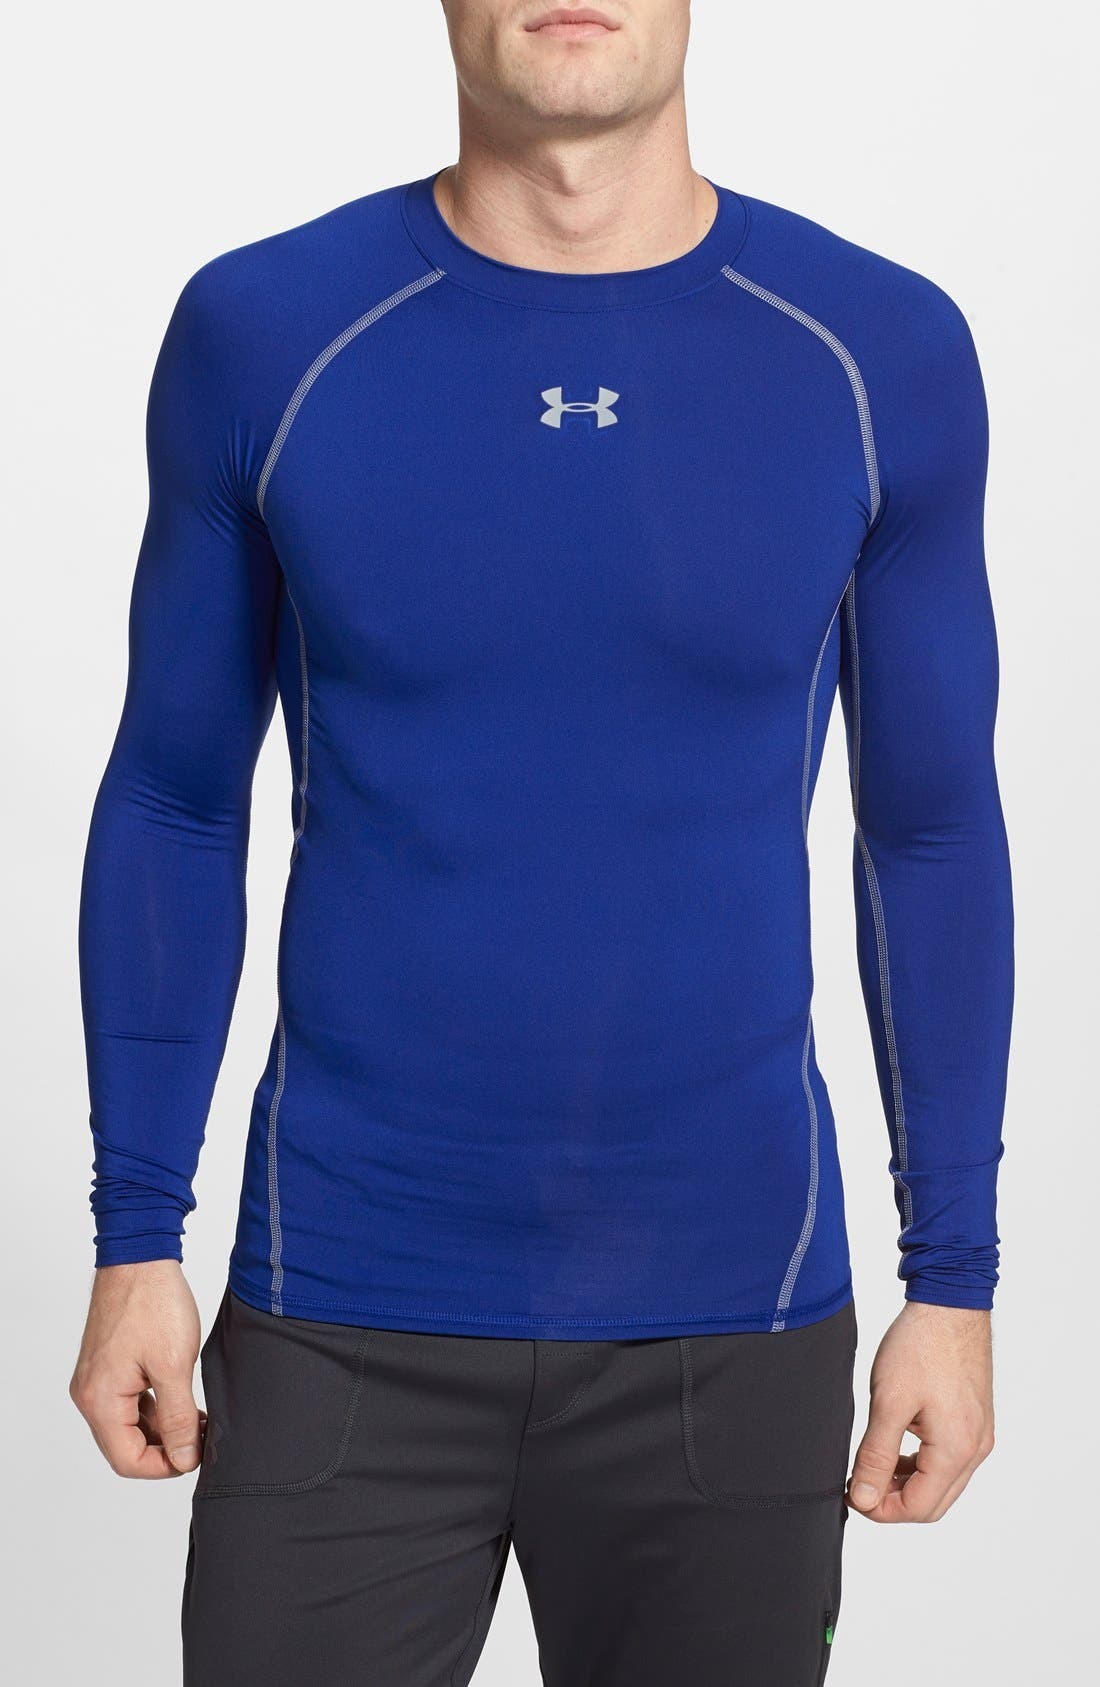 Under Armour Heatgear Compression Fit Long Sleeve T-Shirt, Blue